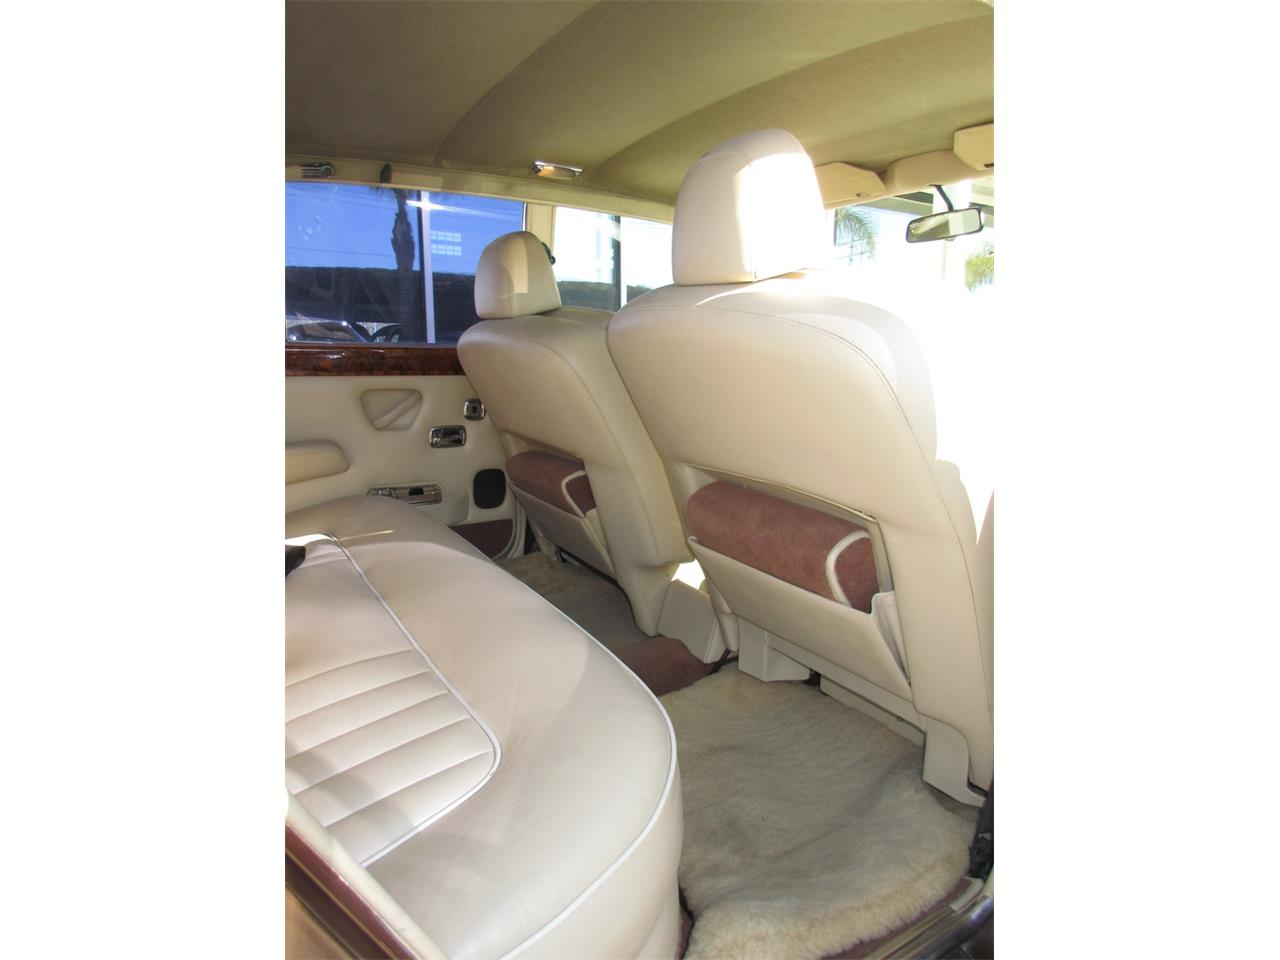 1978 Rolls-Royce Silver Cloud II for sale in Redlands, CA – photo 23